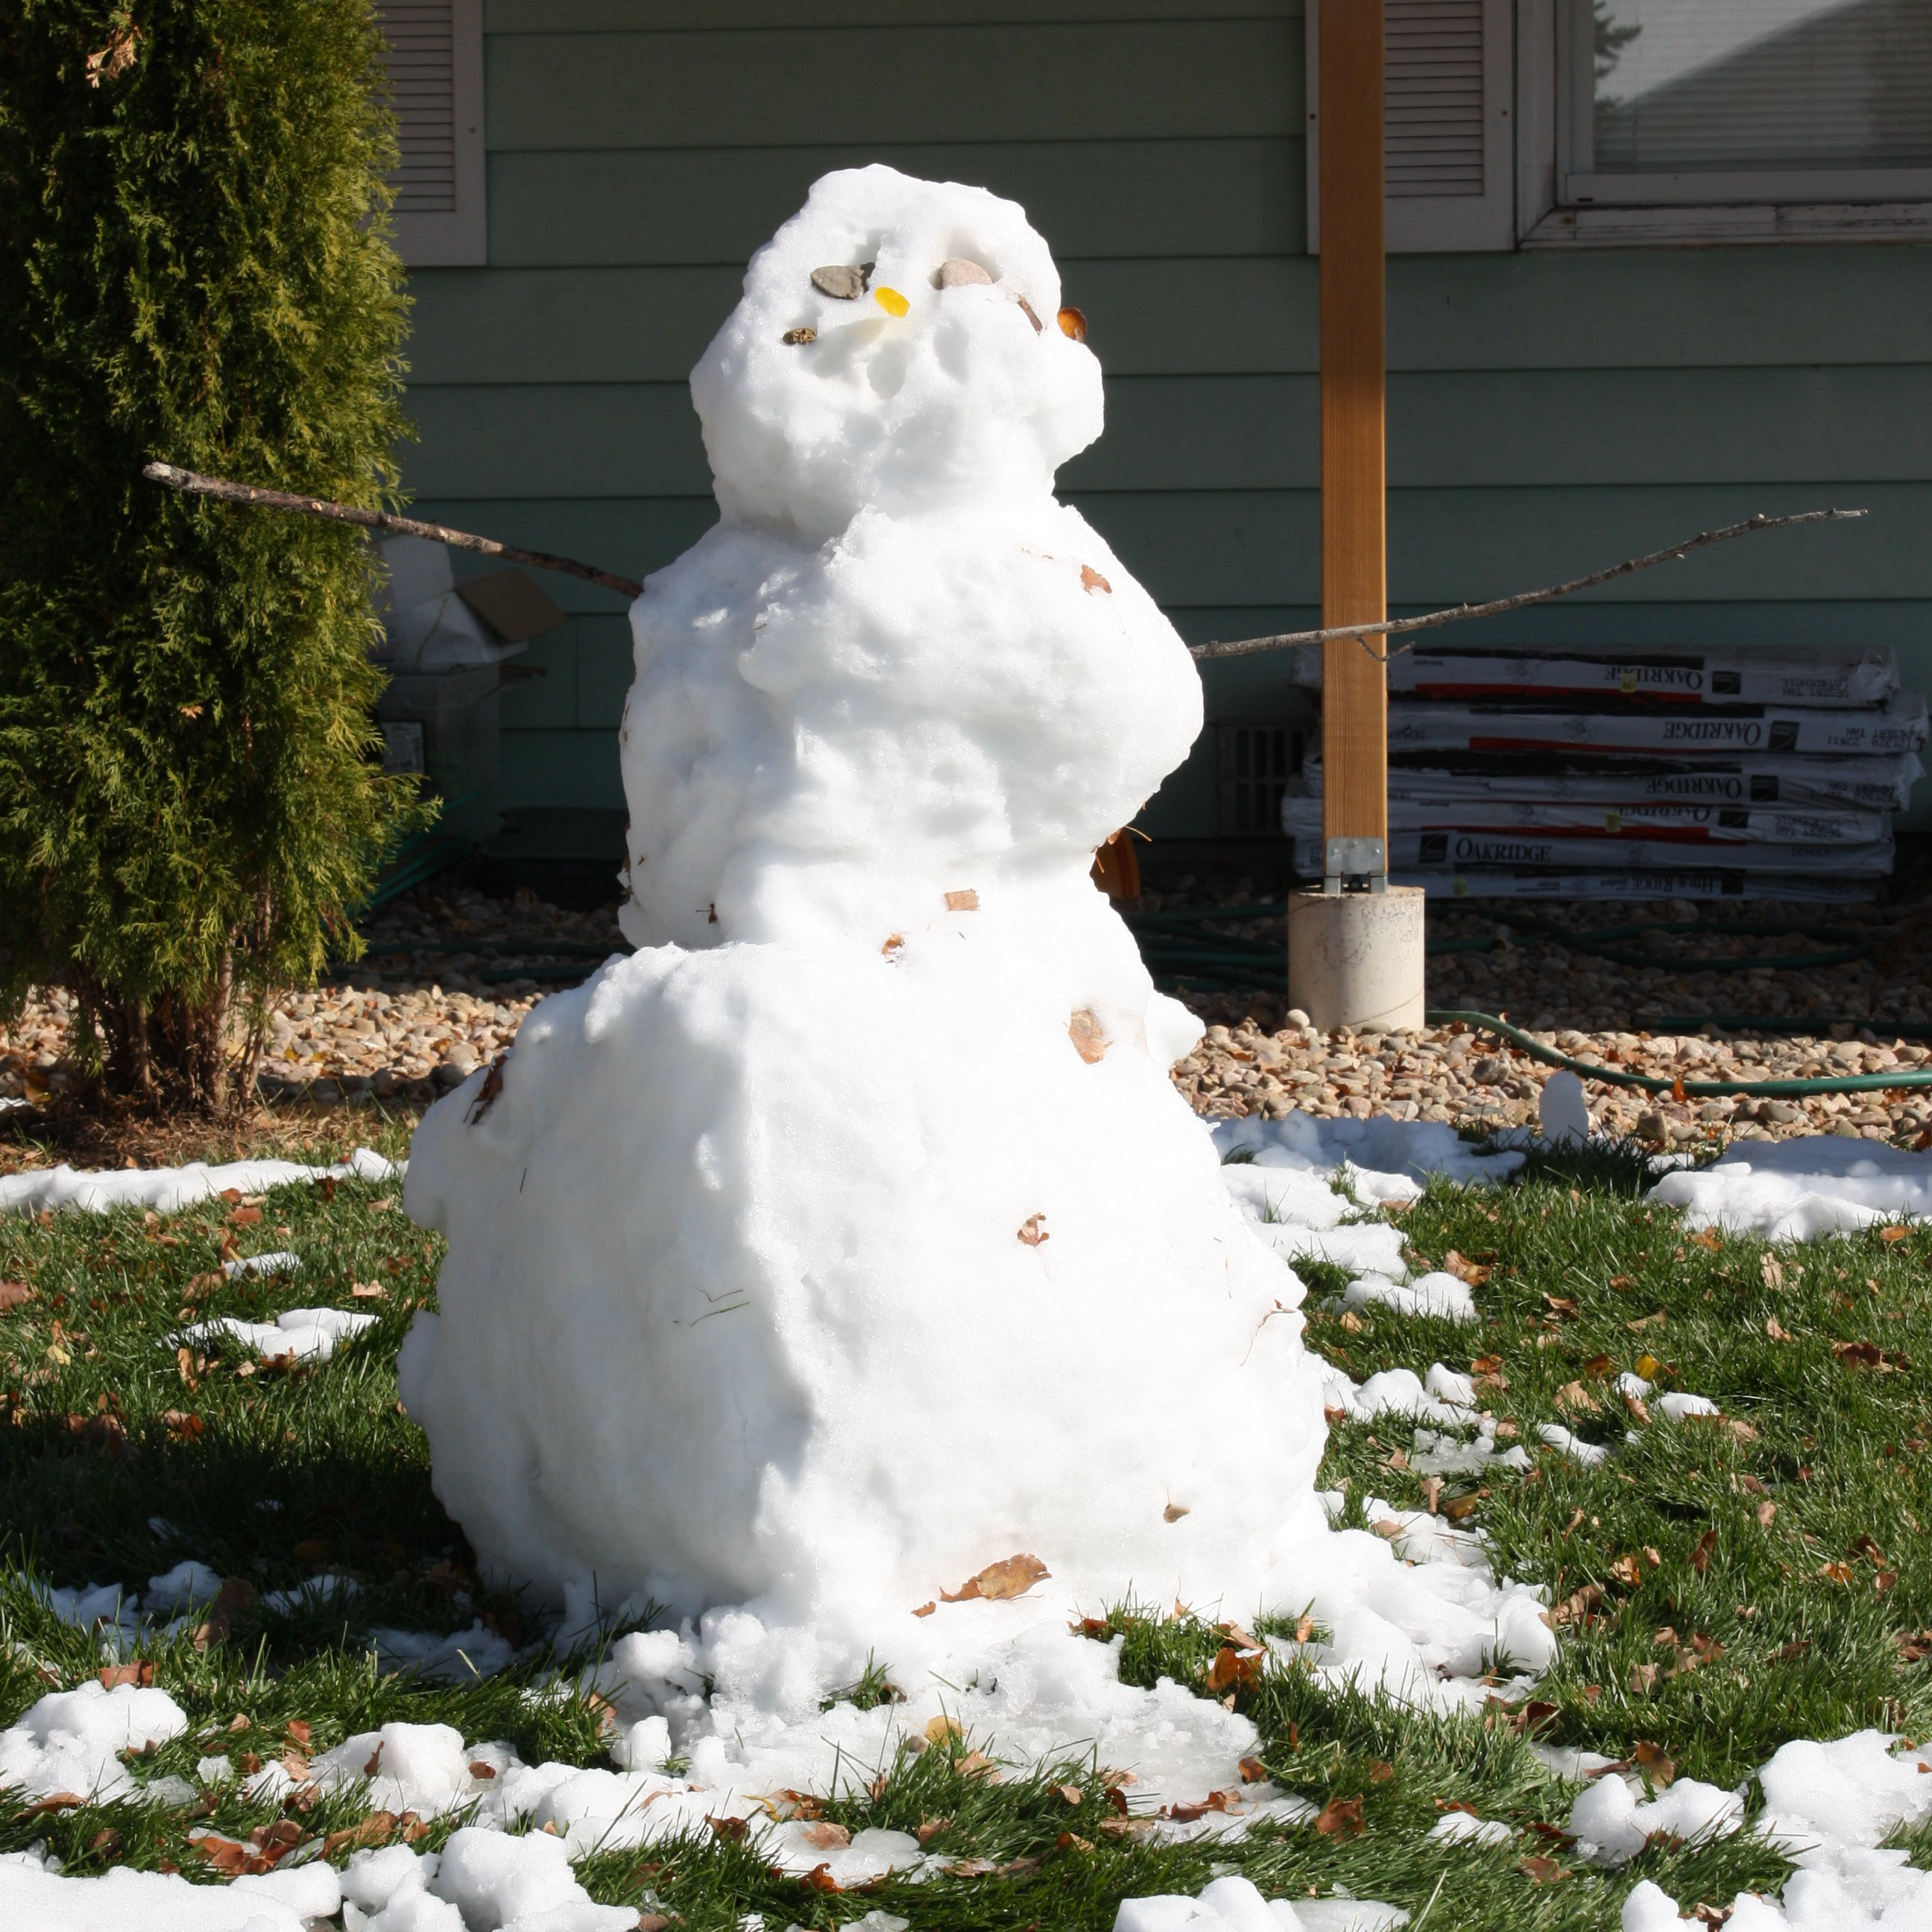 Melting Snowman Picture Free Photograph Photos Public